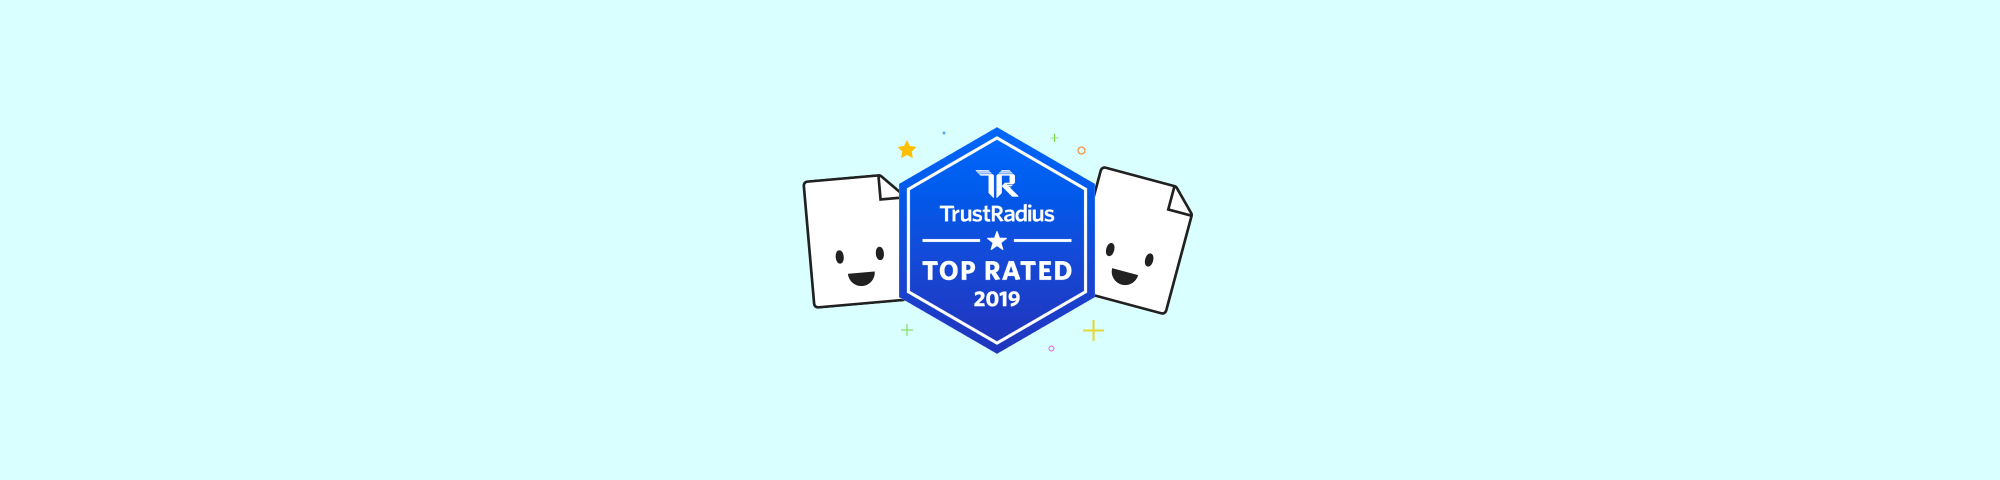 trustradius-top-rated-award-2019